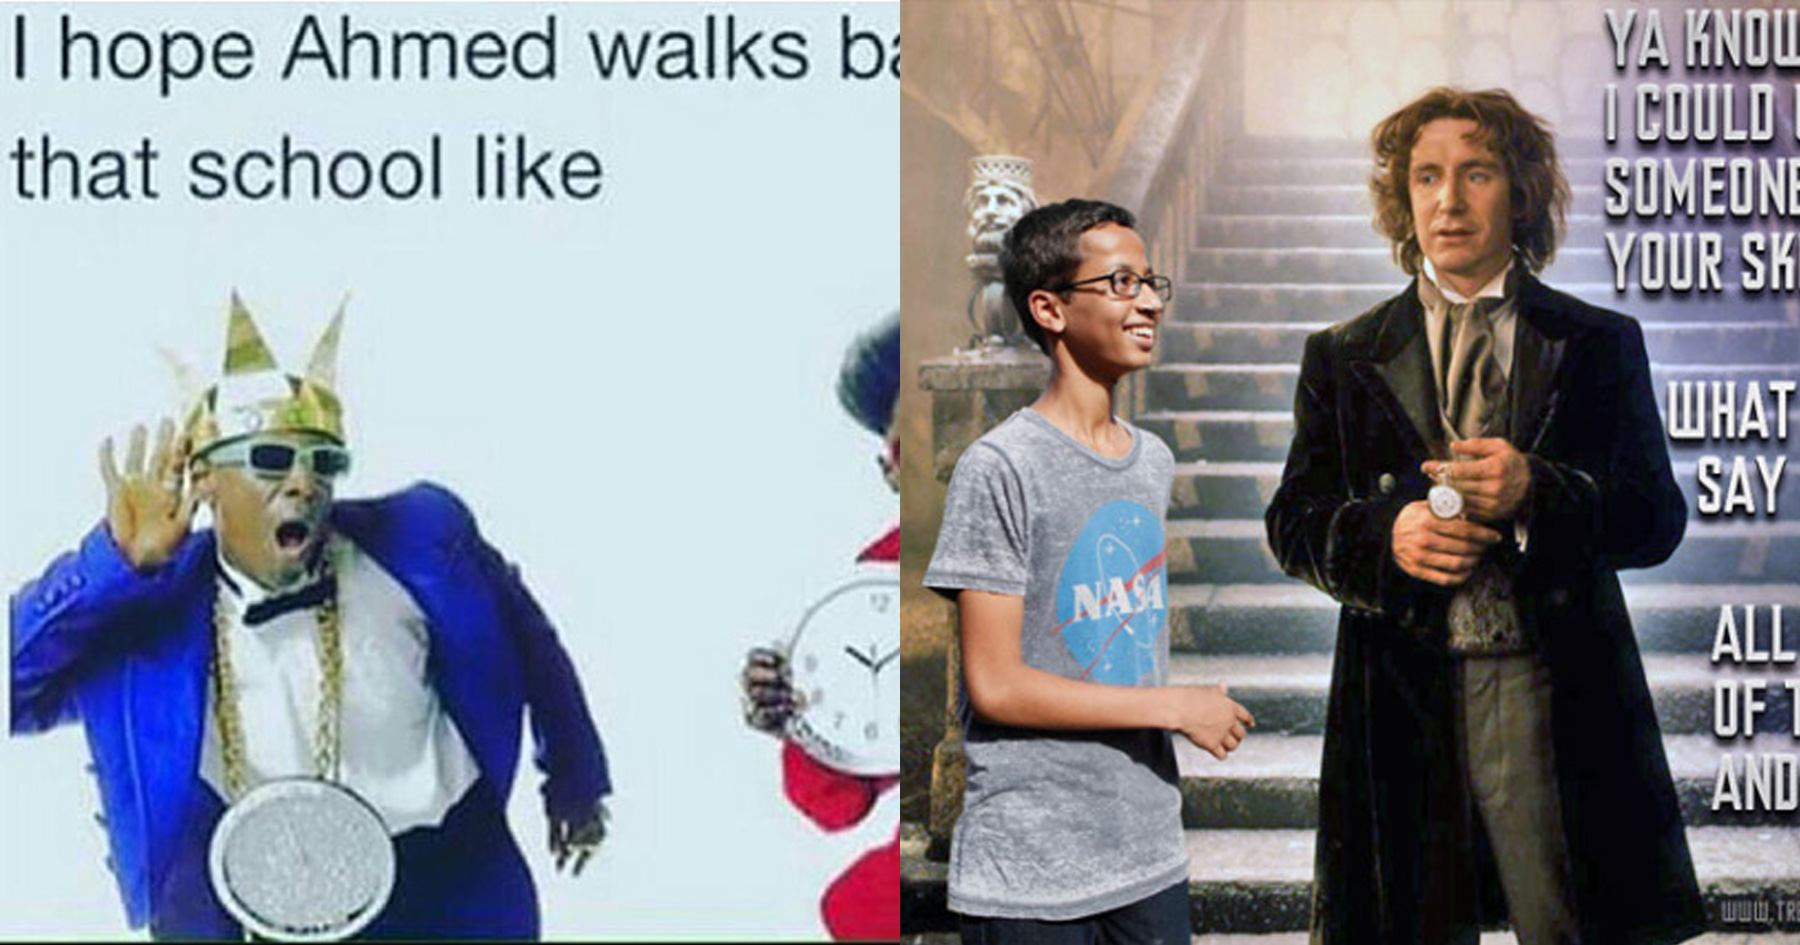 ahmed memes seven memes responding to istandwithahmed attn